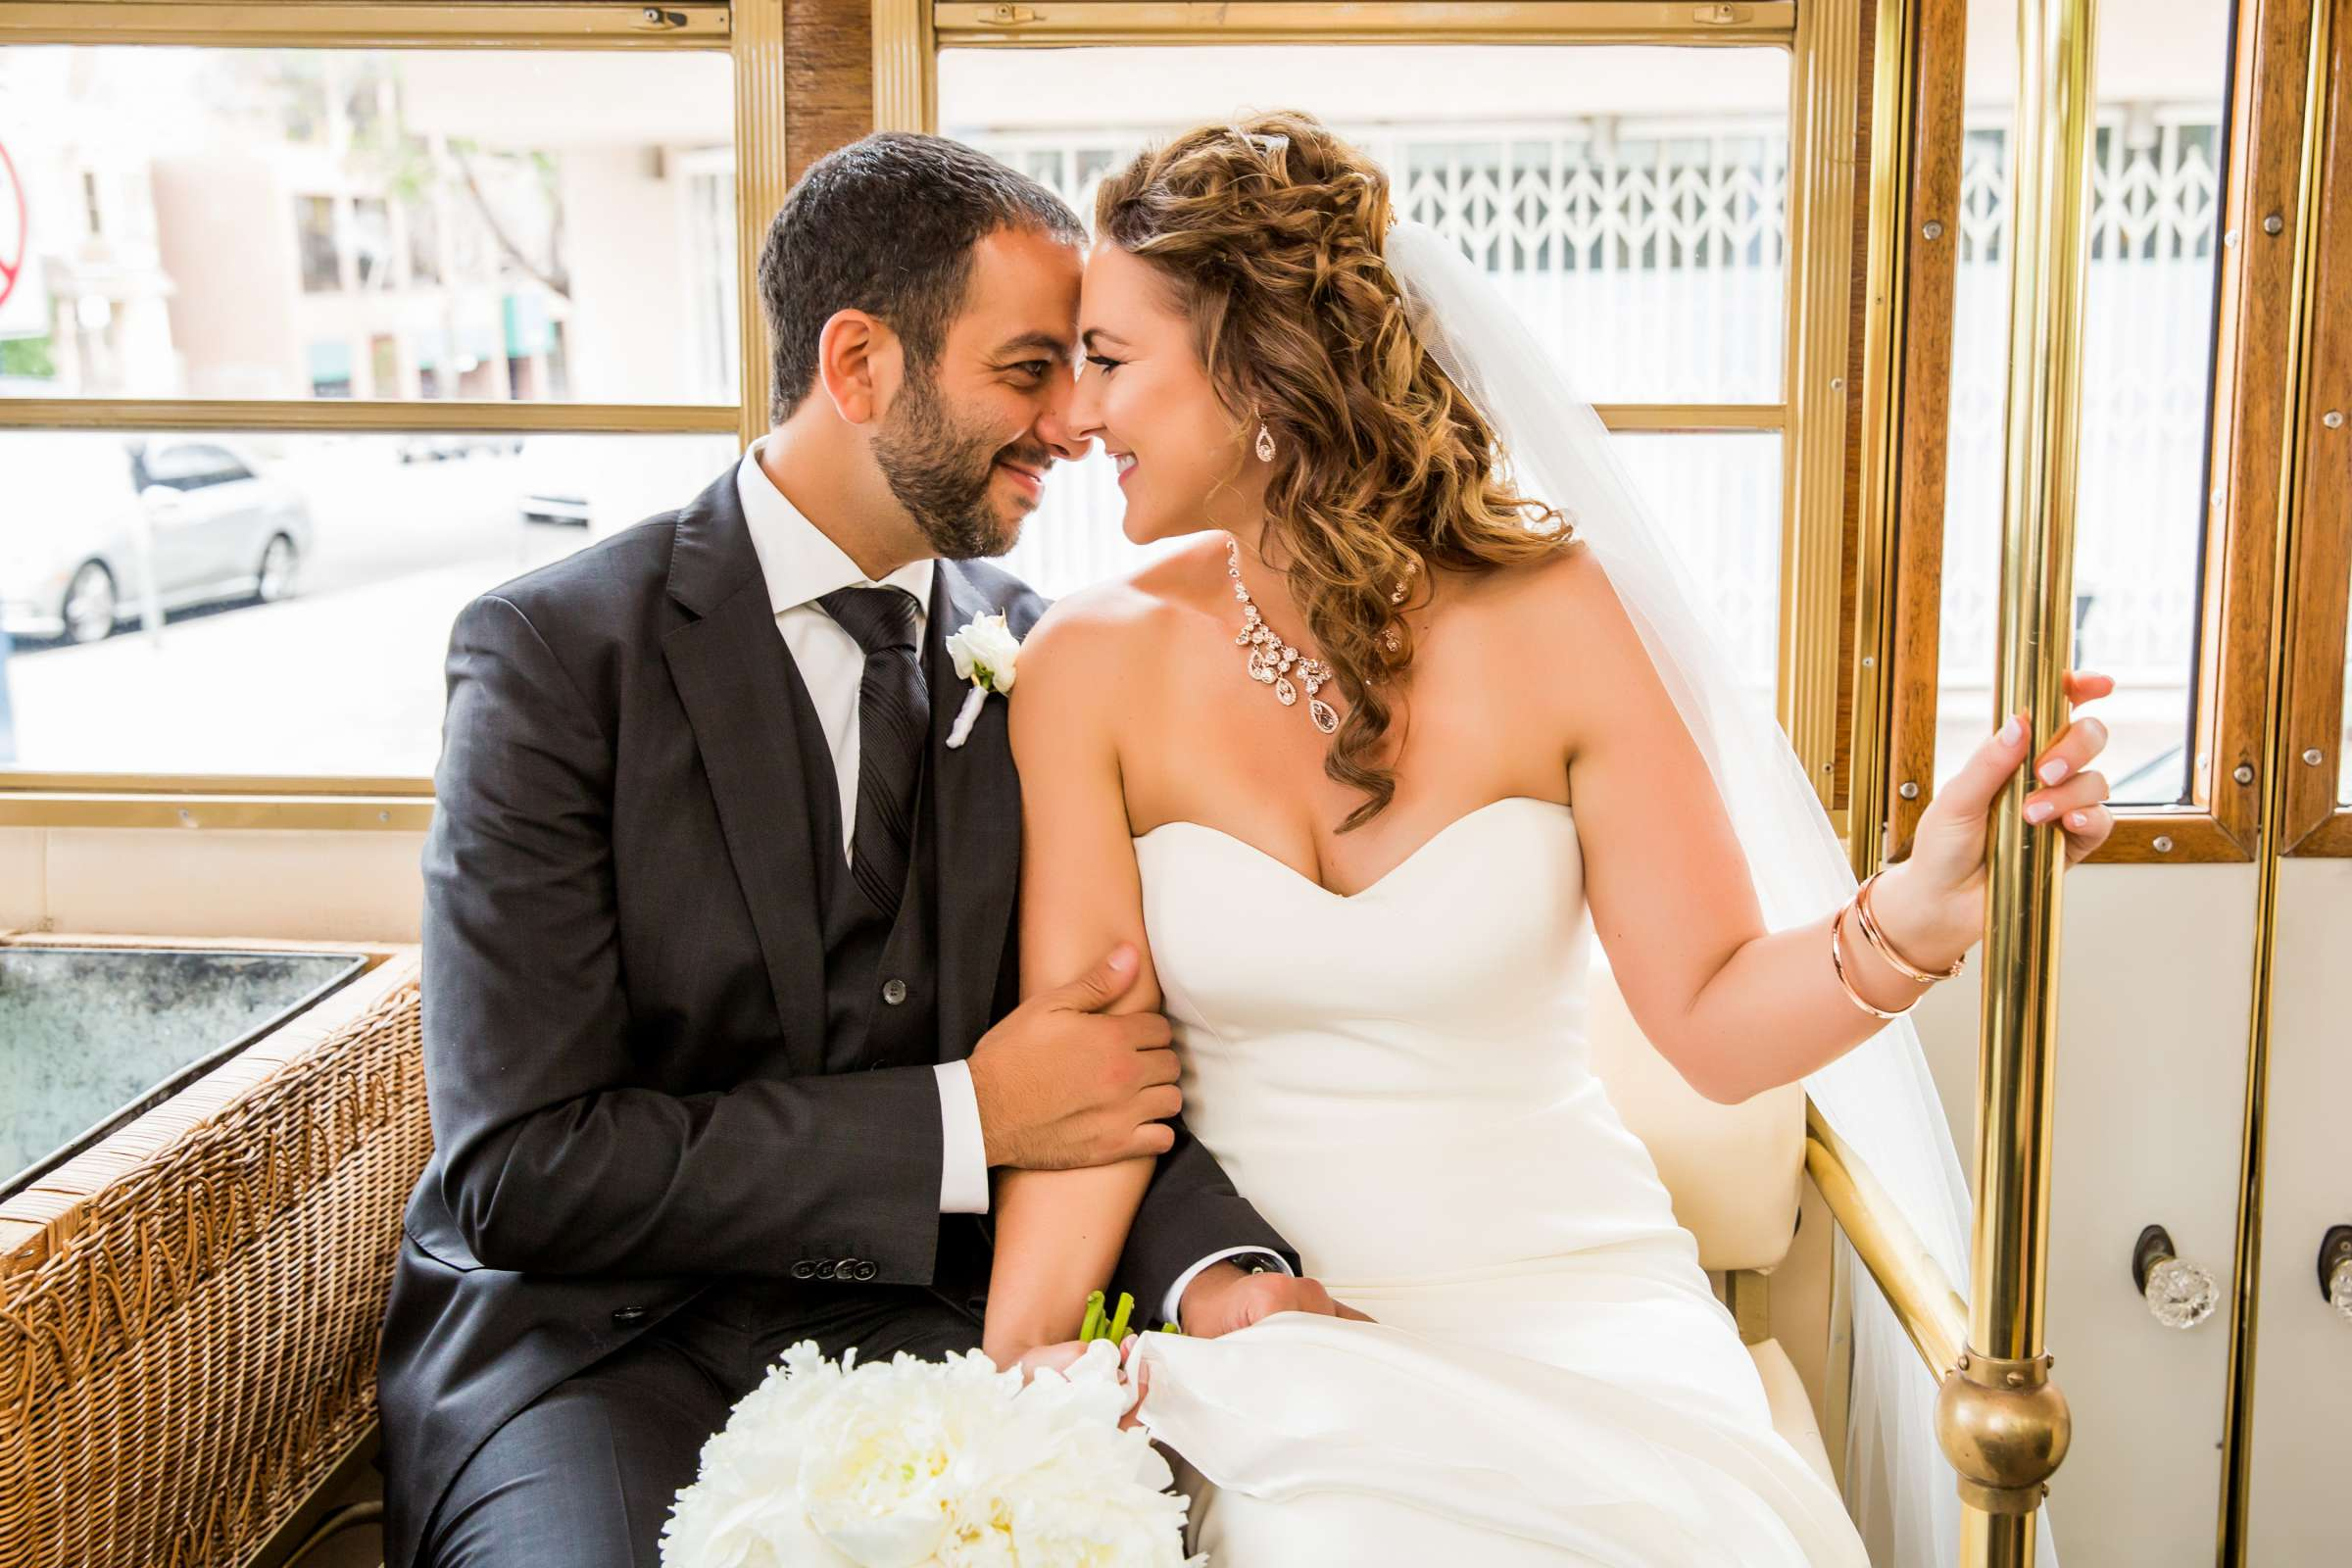 San Diego Museum of Art Wedding coordinated by First Comes Love Weddings & Events, Ruthie and Larry Wedding Photo #236816 by True Photography